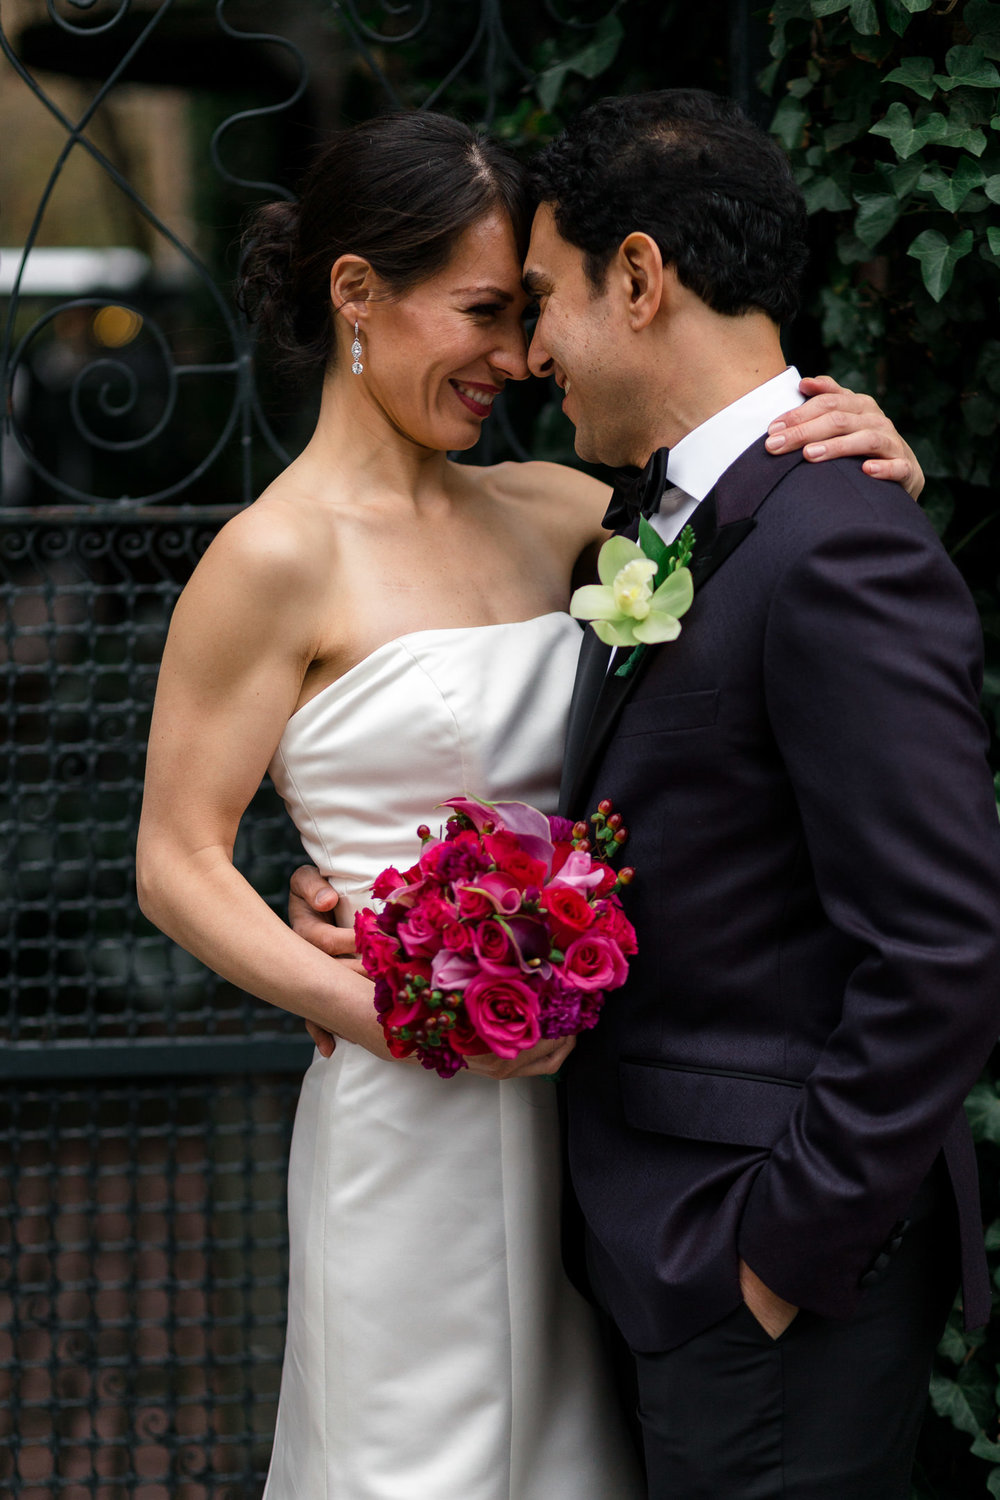 Documentary-Wedding-Photography-Andrew-Tat-Maria & AJ-04.jpg